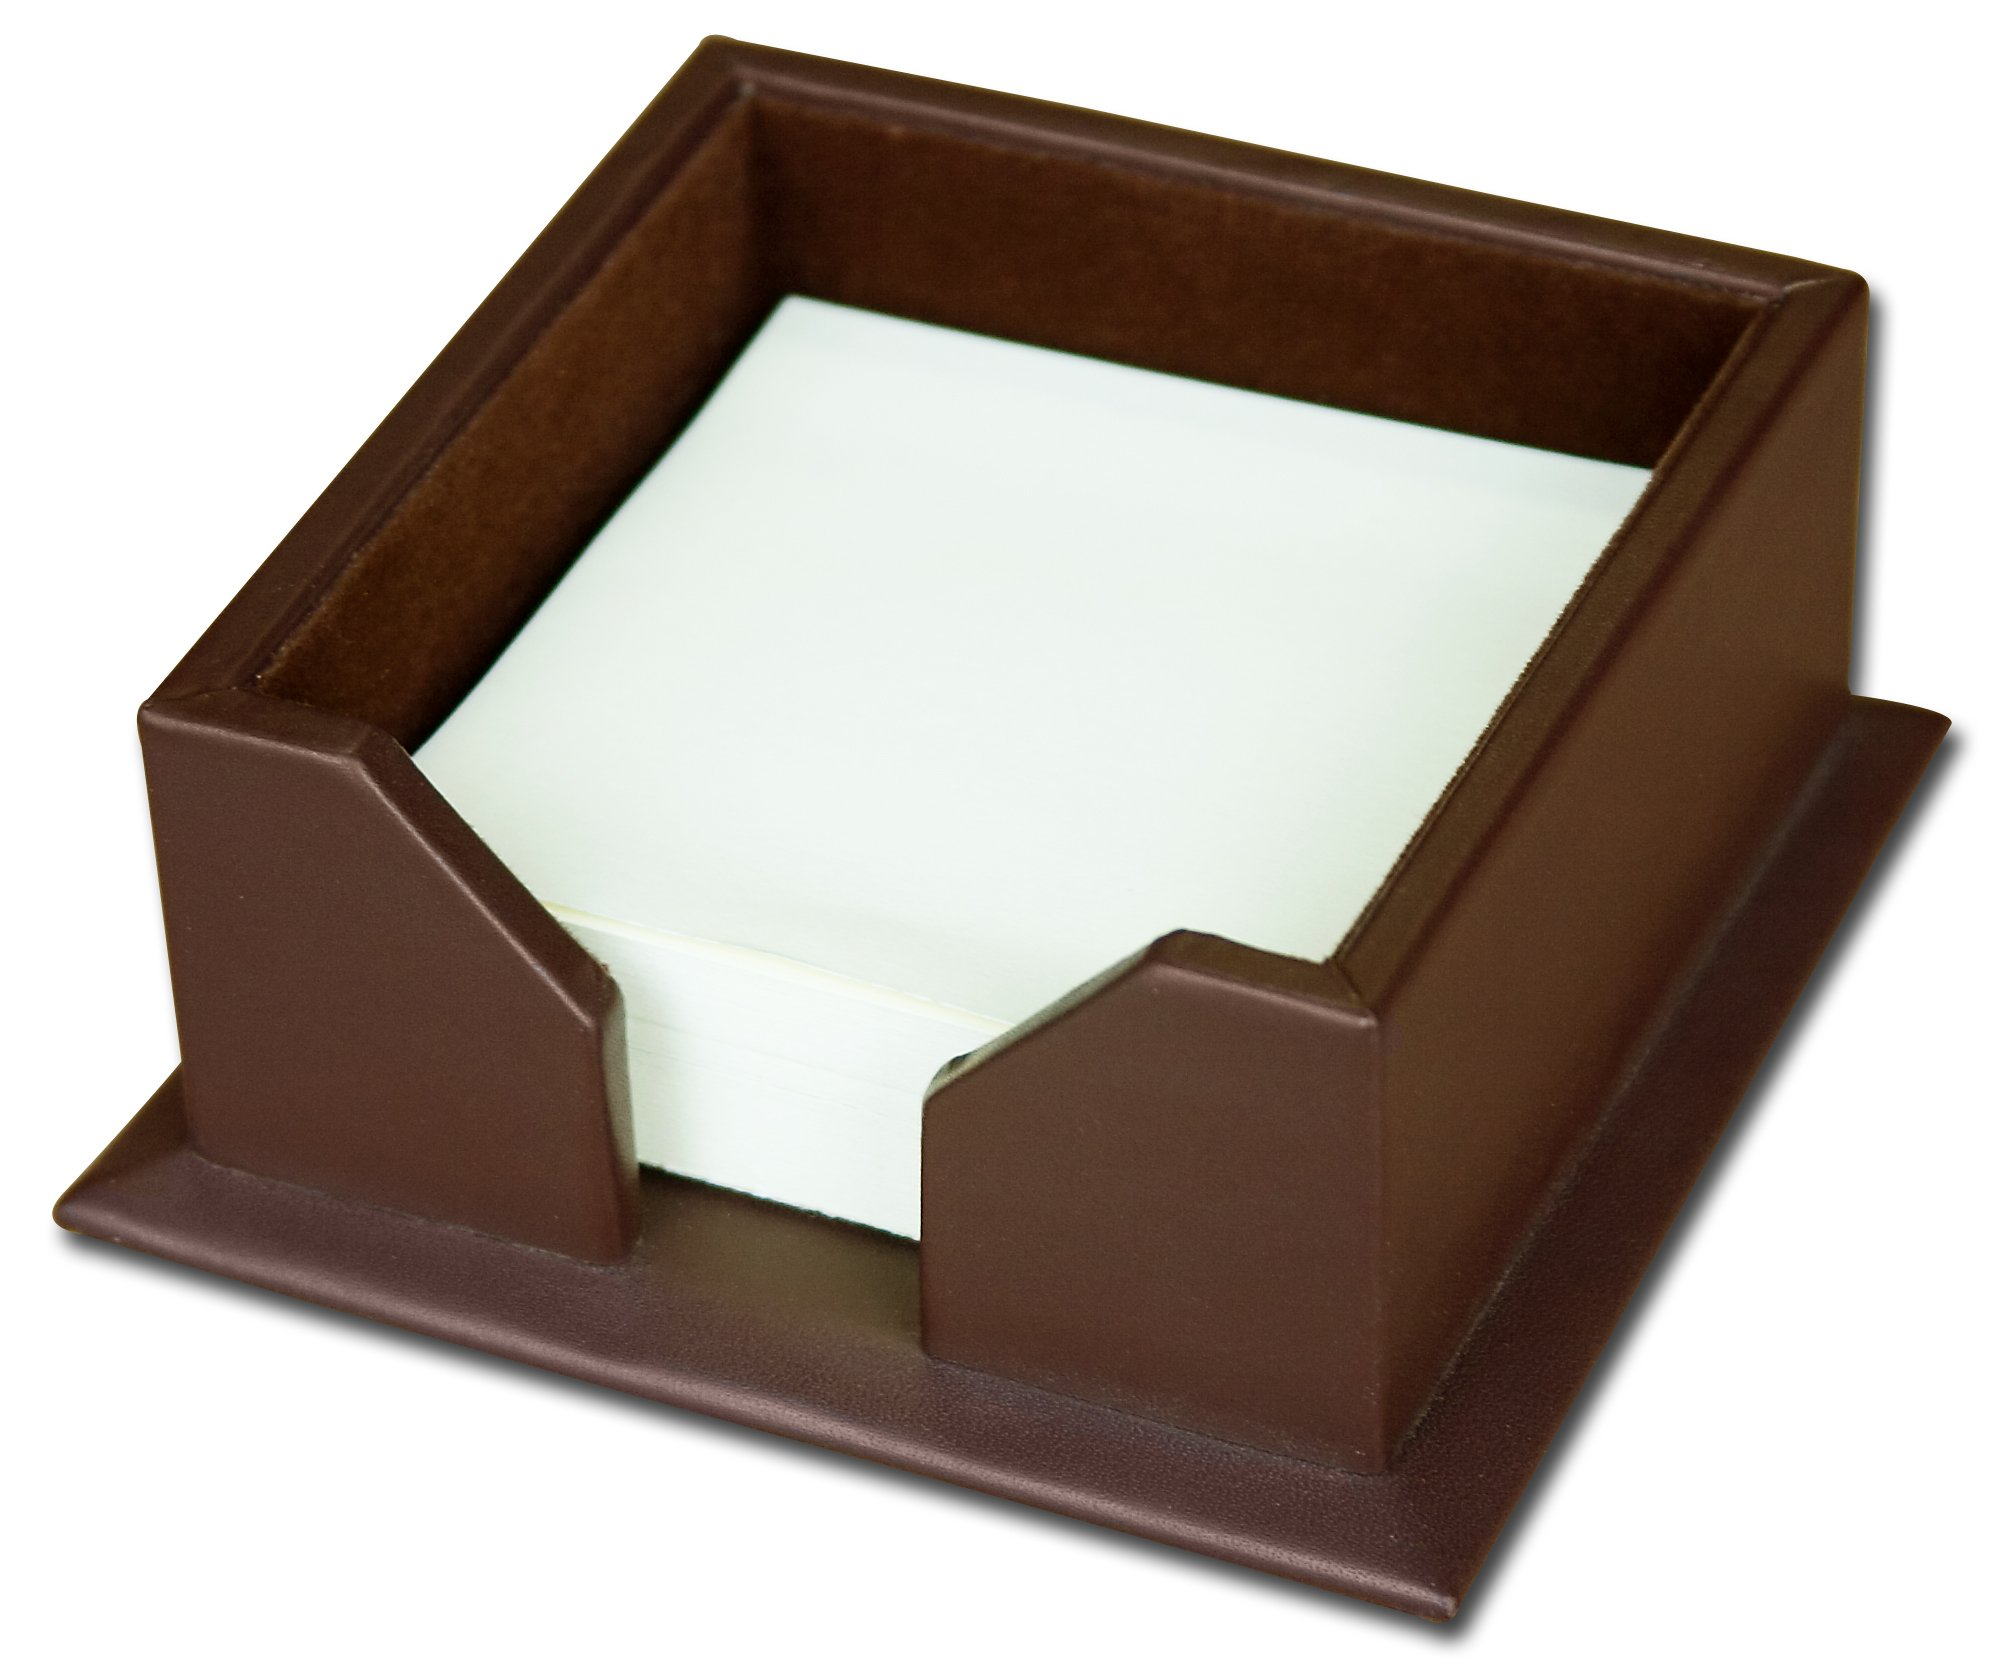 Dacasso Chocolate Brown Leather Note Holder, 3-Inch by 3-Inch